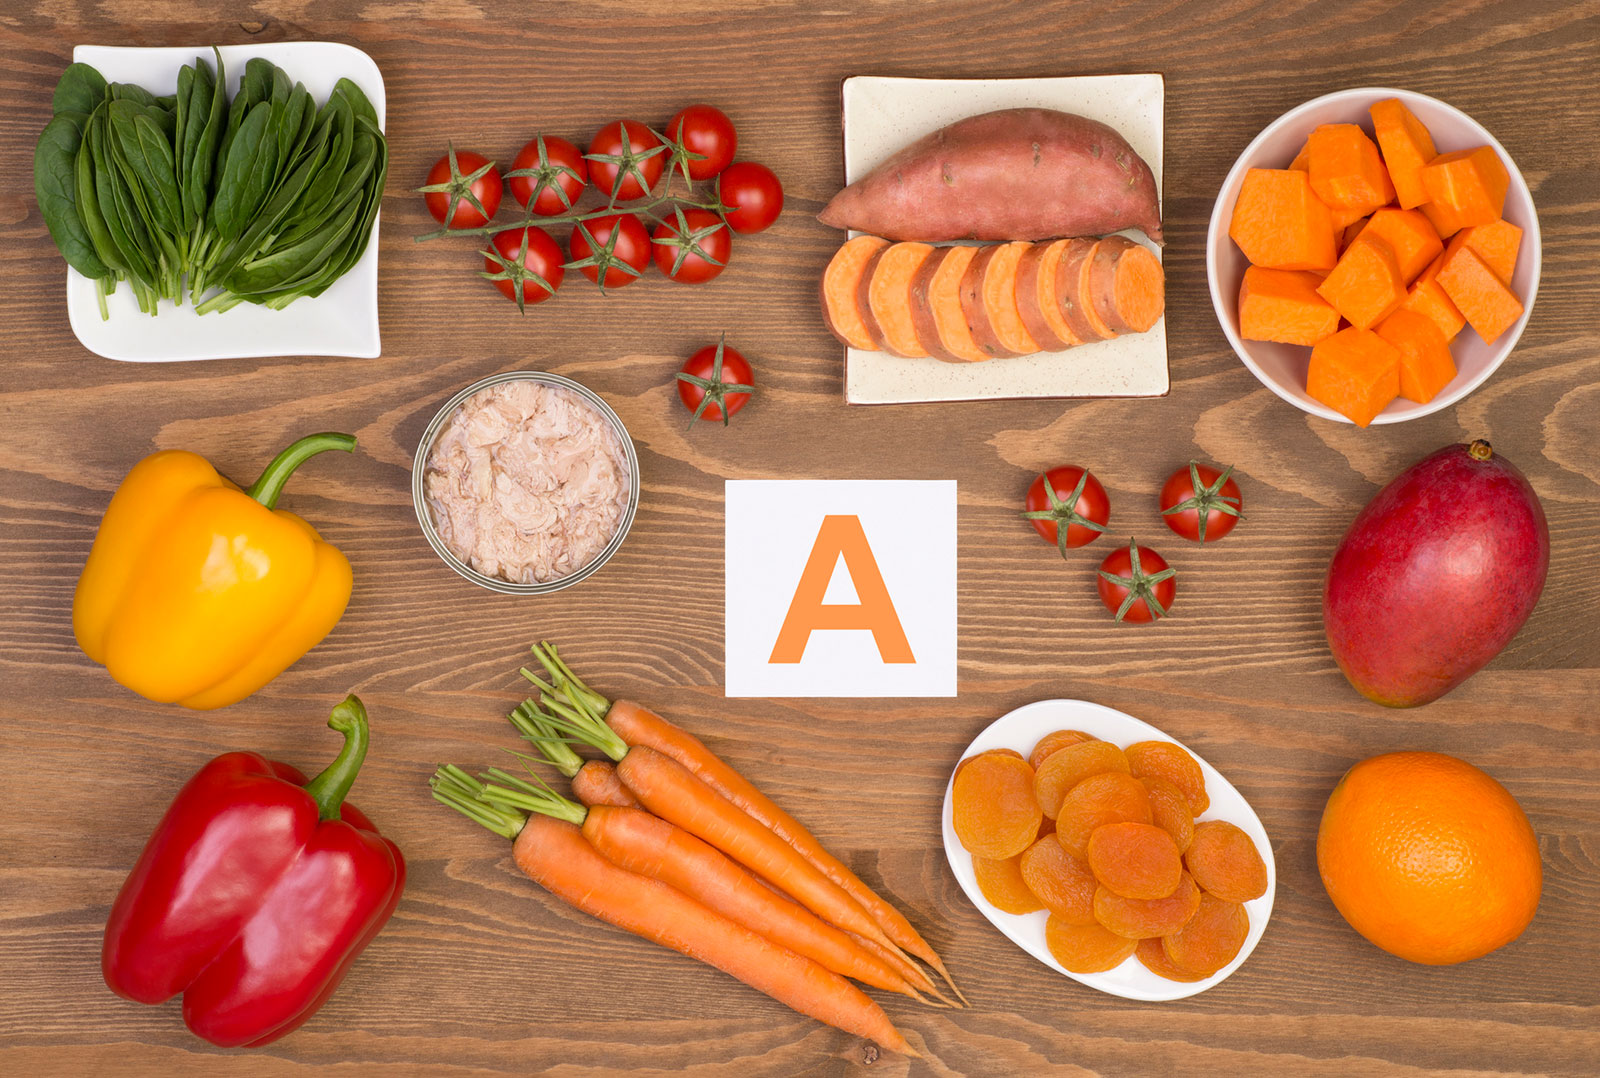 Does Vitamin A Help Treat Lung Cancer